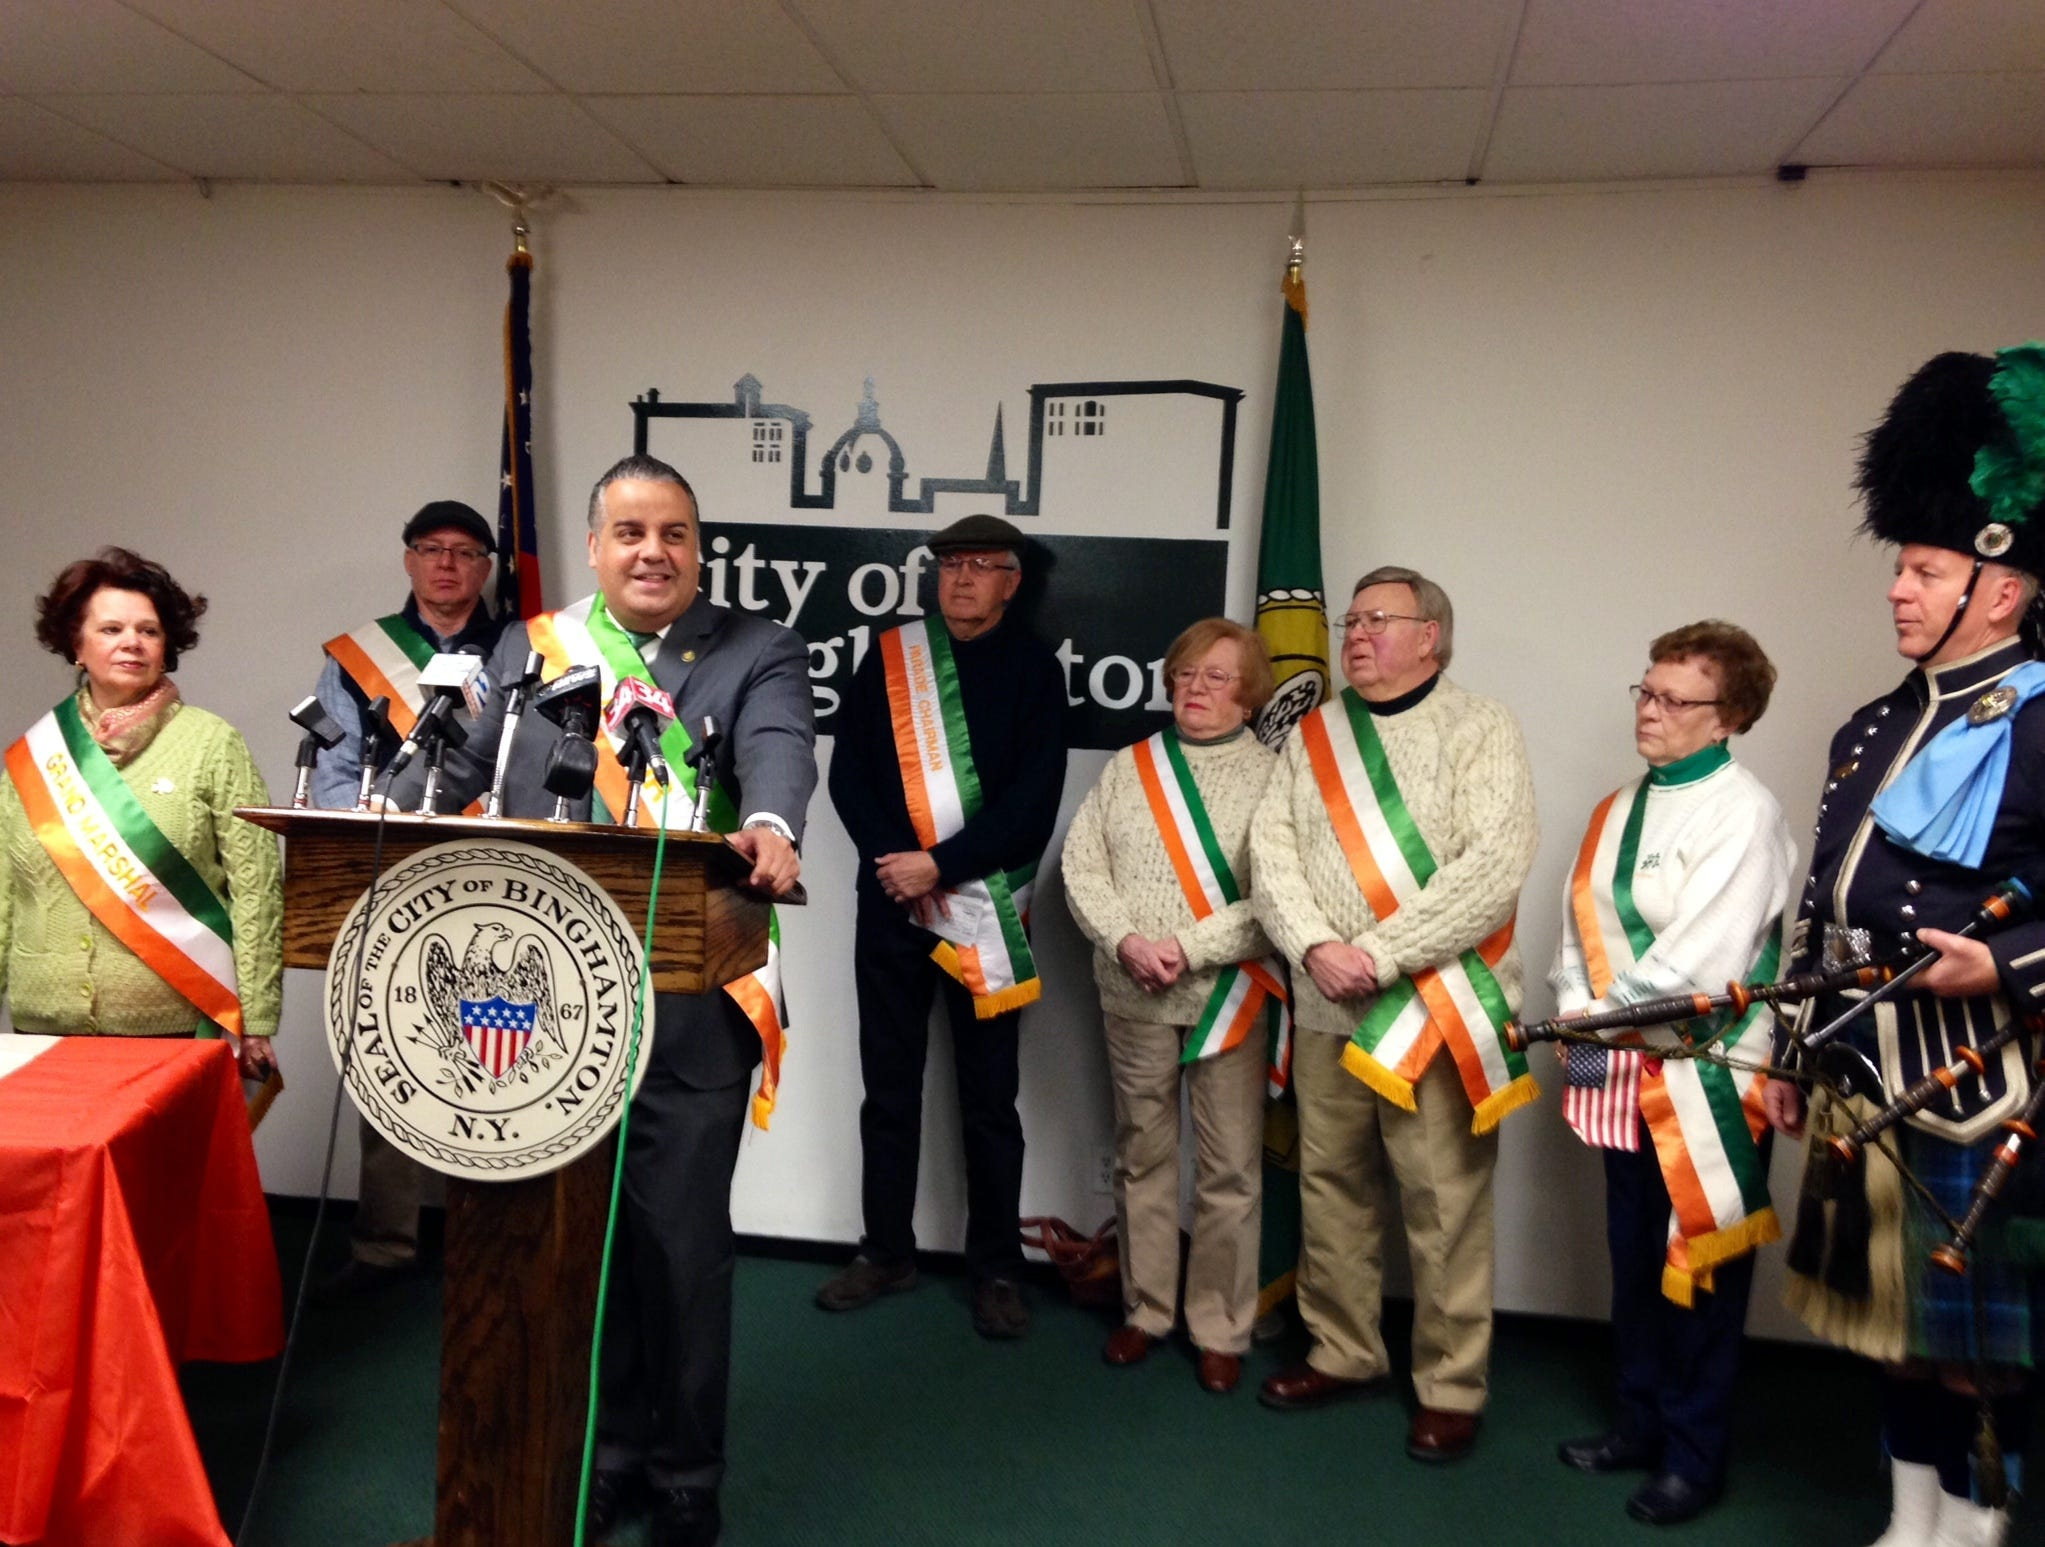 2016: Binghamton Mayor Richard David held a press conference  Thursday at City Hall to outline details of Saturday's St. Patrick's Day Parade.